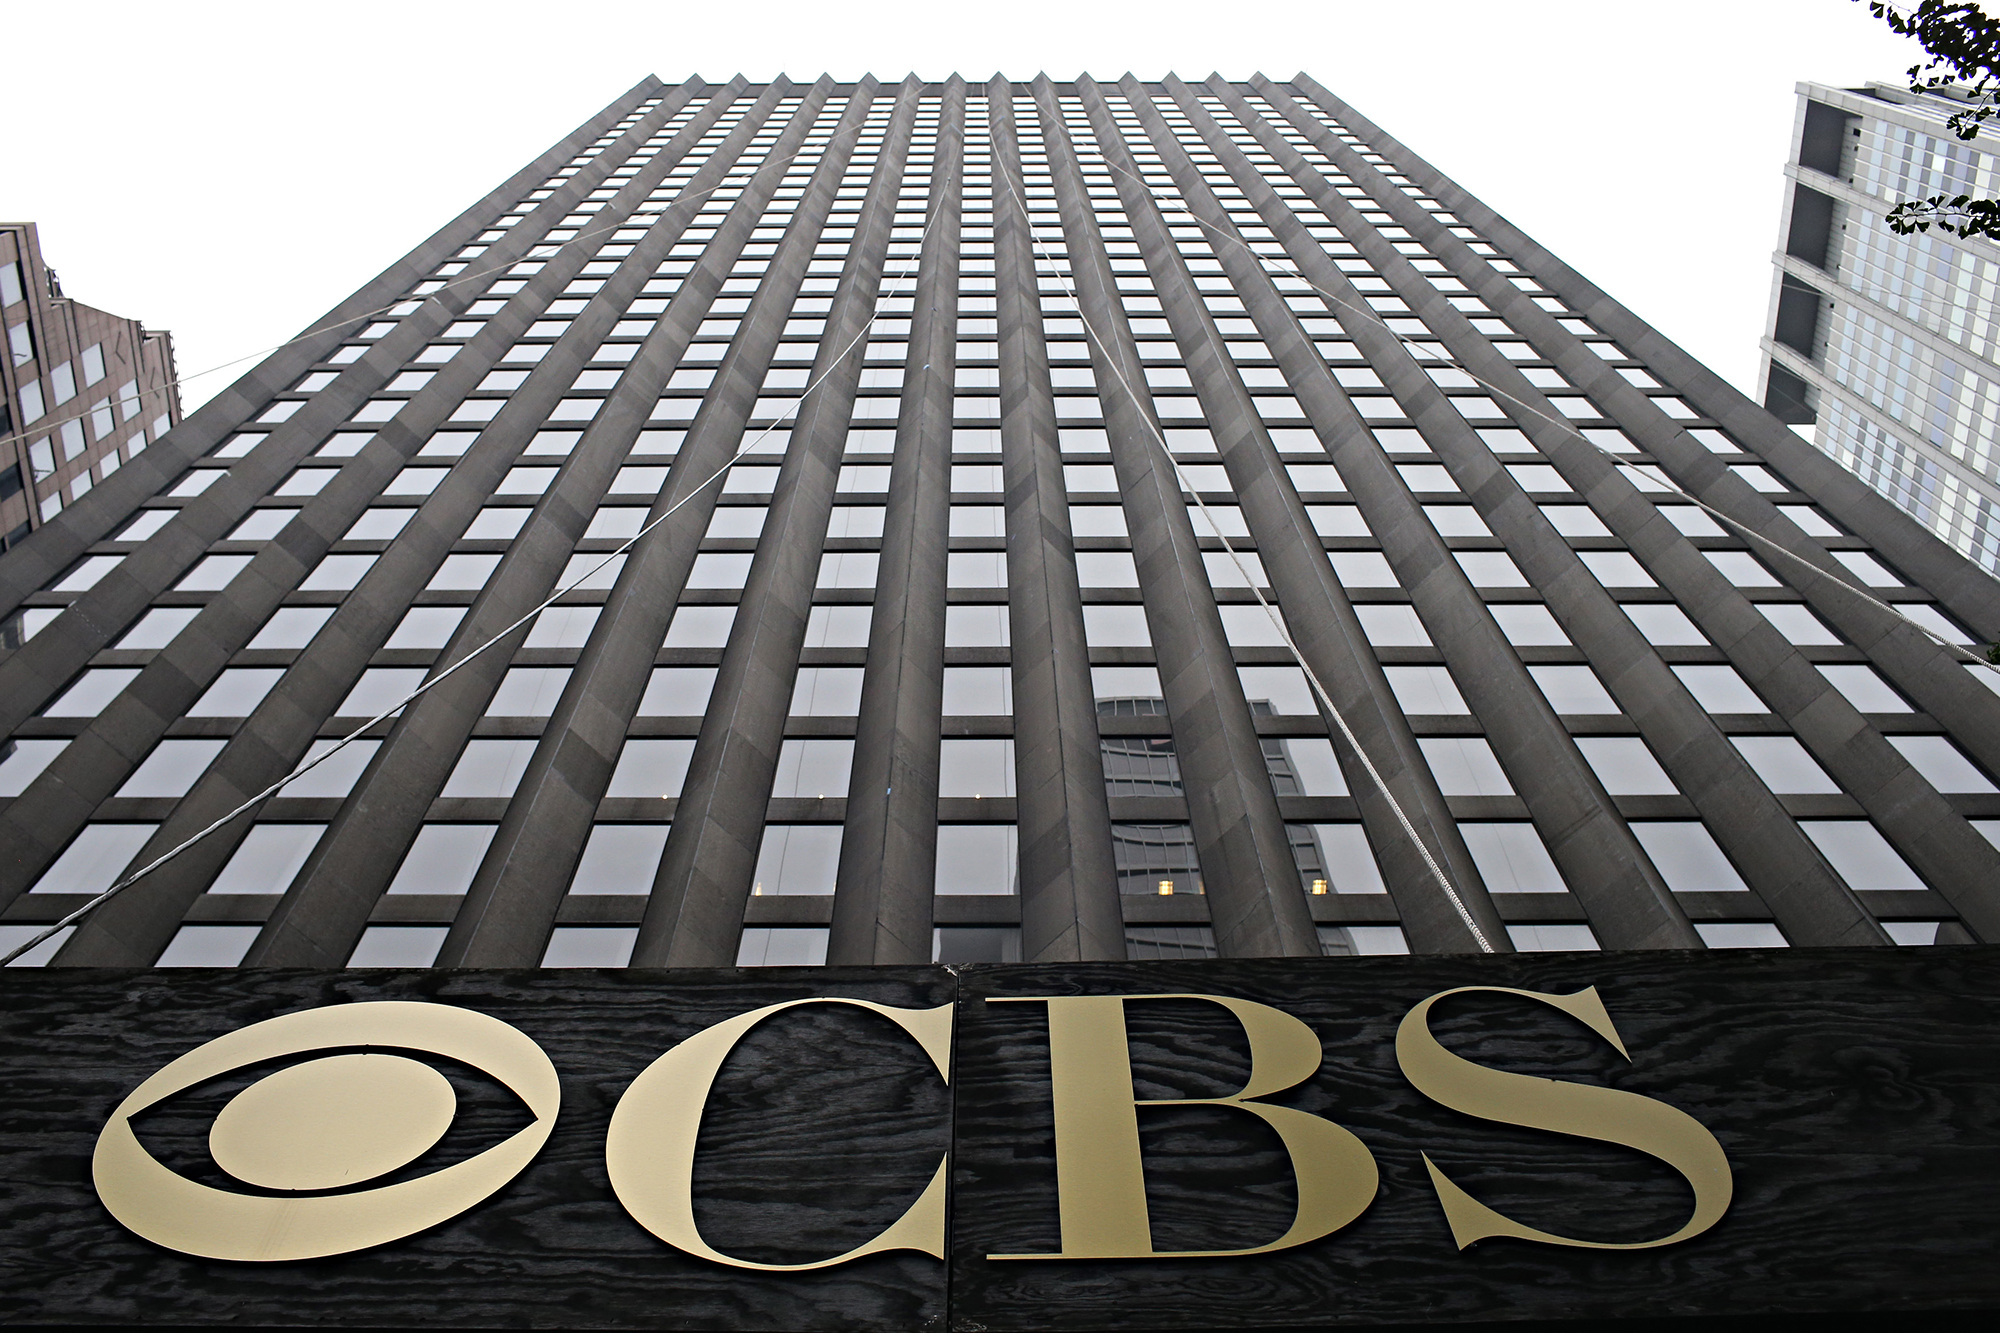 CBS suspends two top execs after LA Times report alleging racism and misogyny